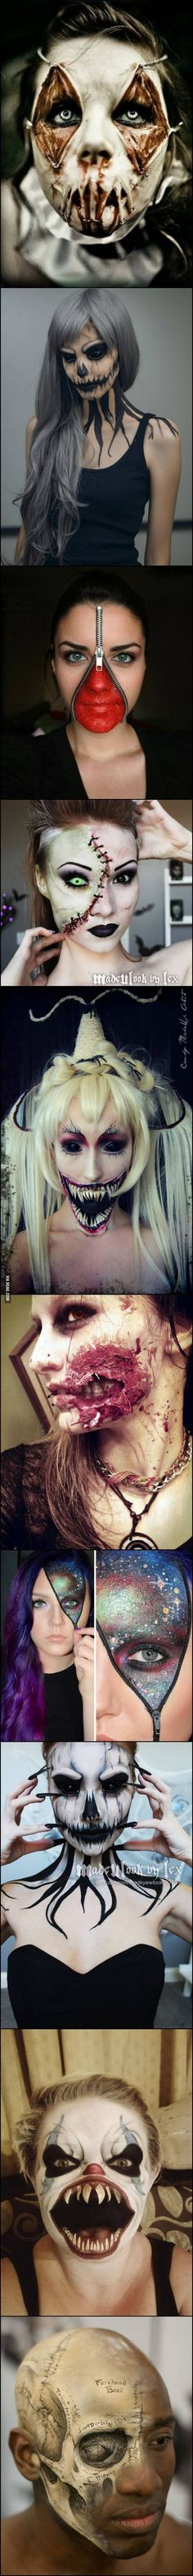 Some Of The Creepiest Halloween Makeup Ideas.